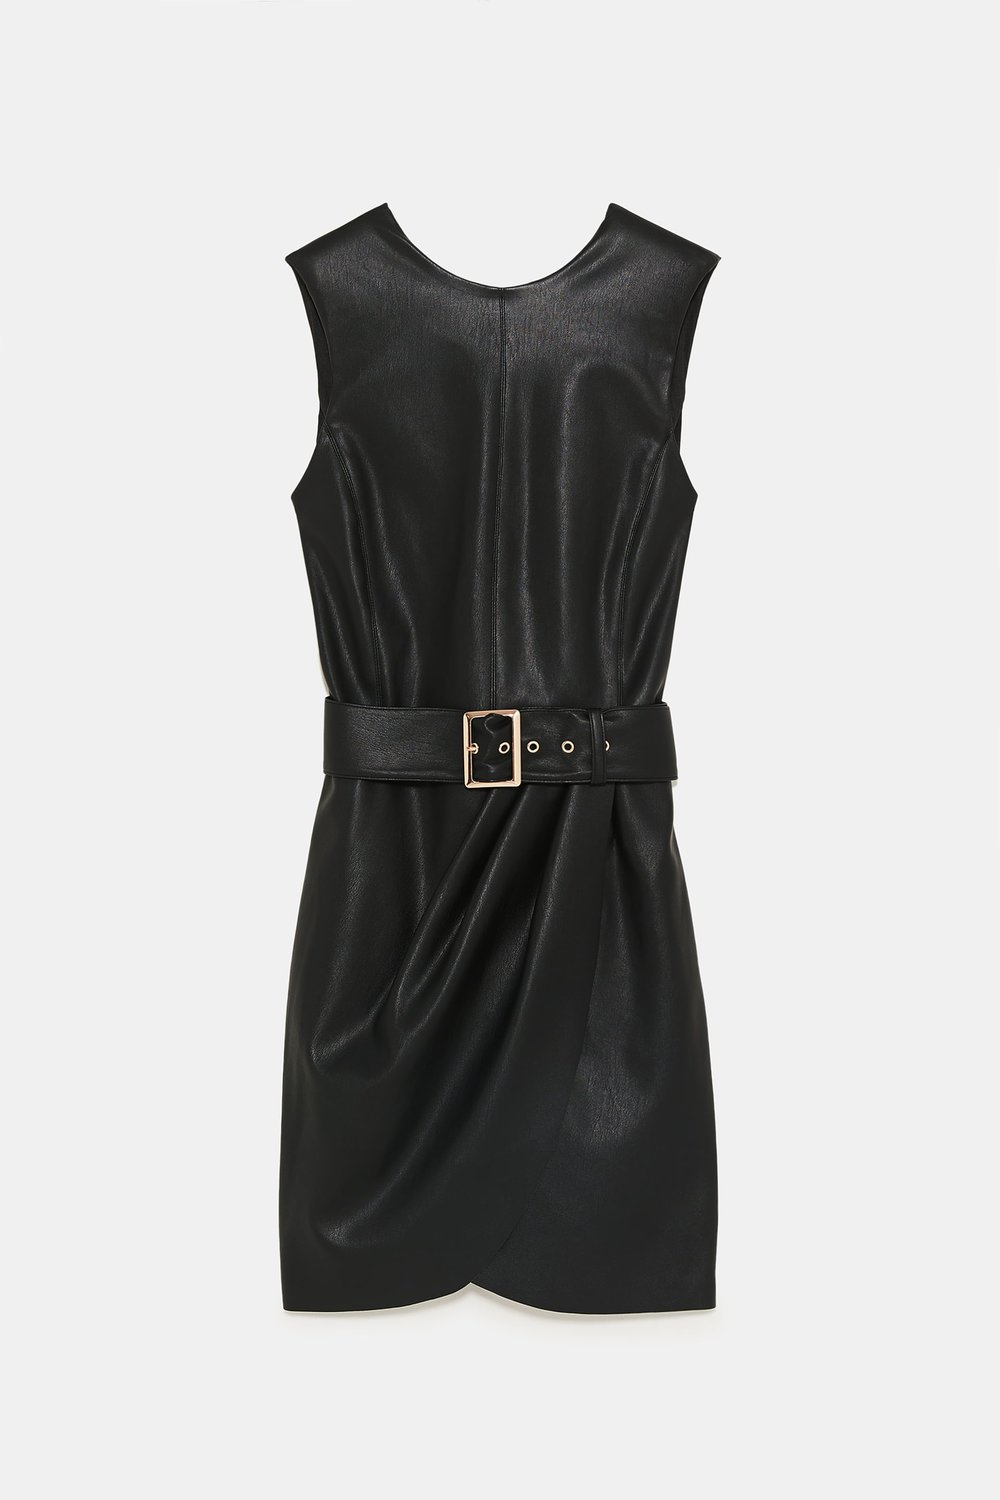 https://www.zara.com/ca/en/faux-leather-dress-with-belt-p02398224.html?v1=6450415&v2=1074541